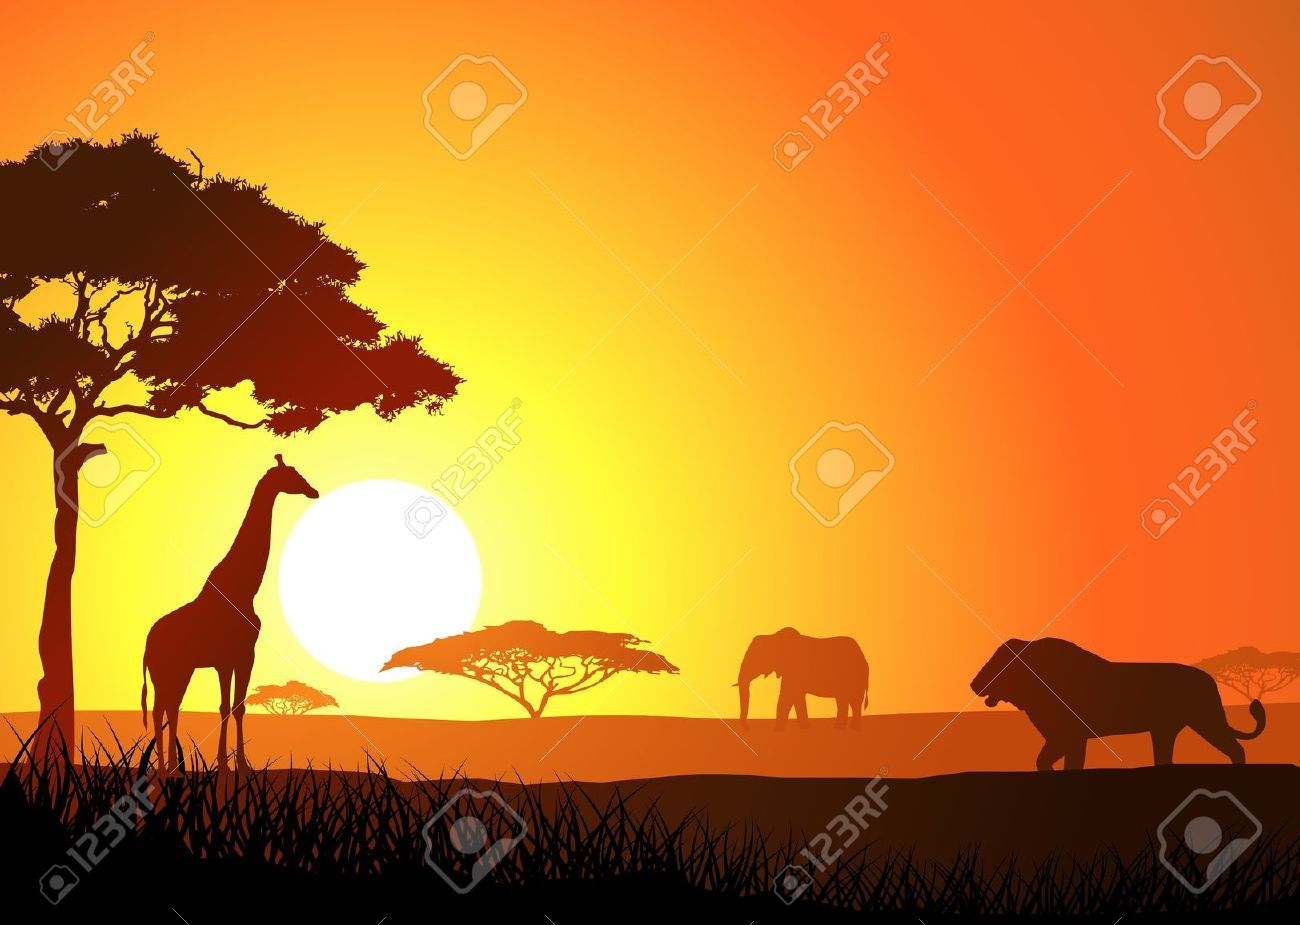 Africa savanas clipart vector royalty free download African Savanna Stock Vector Illustration And Royalty Free African ... vector royalty free download